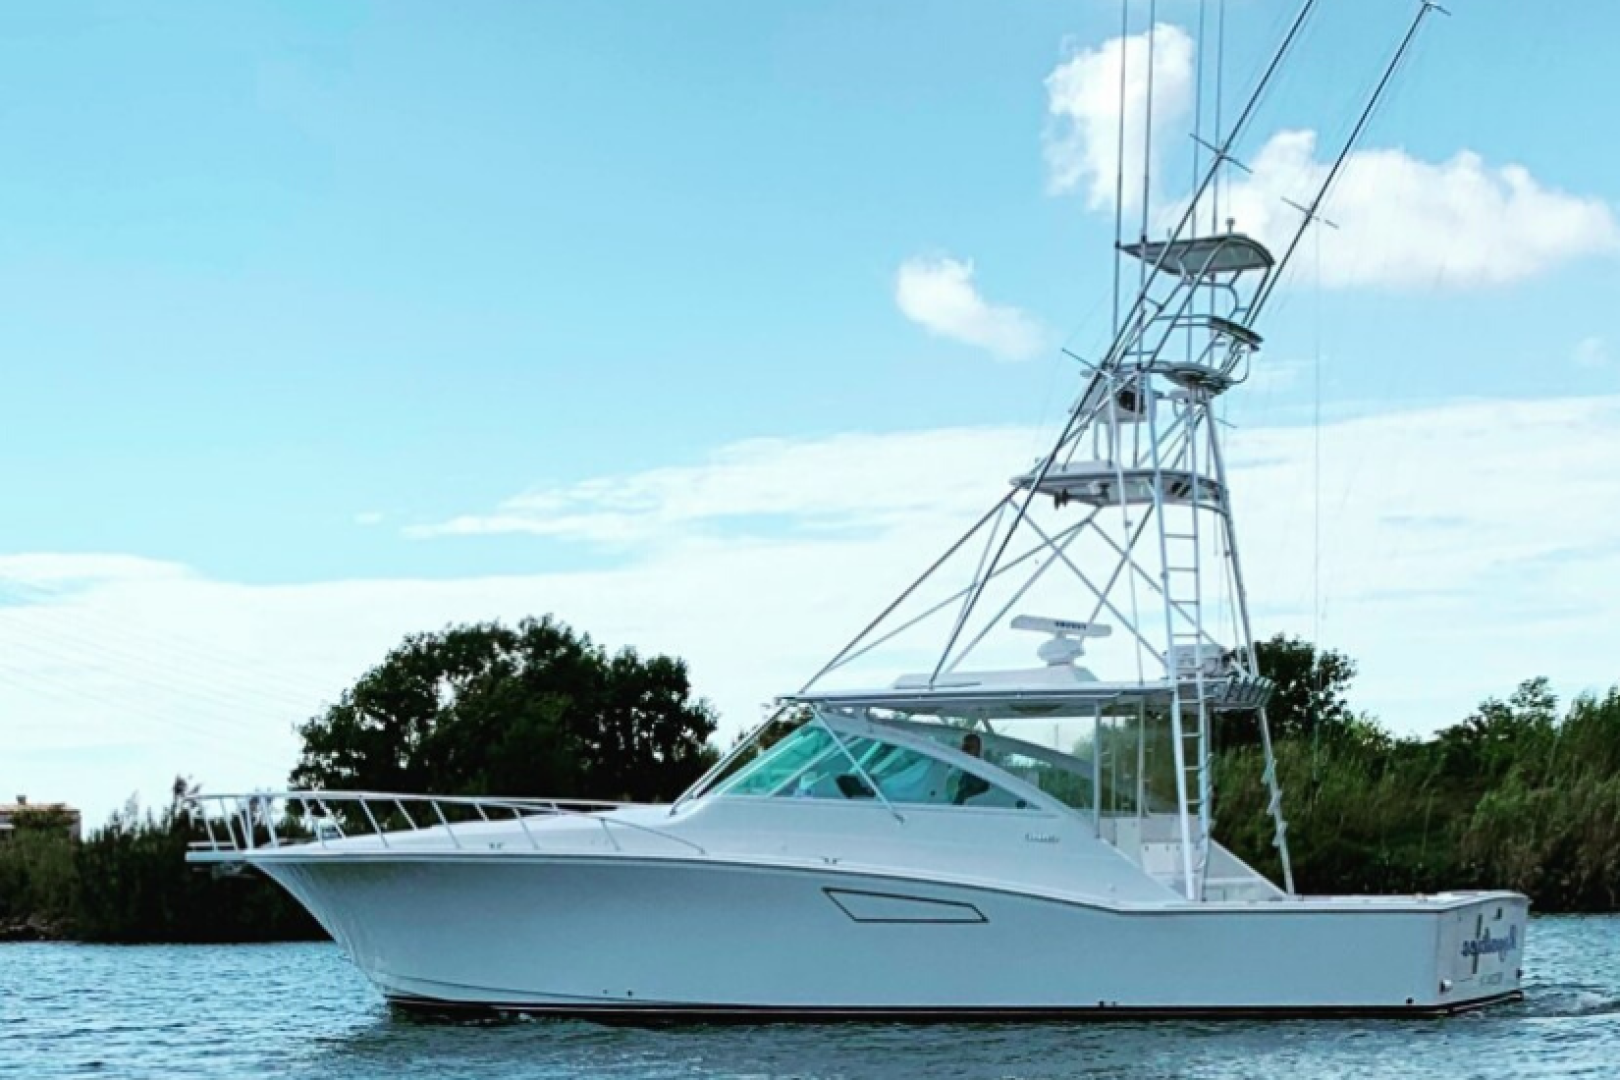 Royalties is a Cabo 45 Express Yacht For Sale in Galveston-Royalties Cabo 2001 45 Express-0